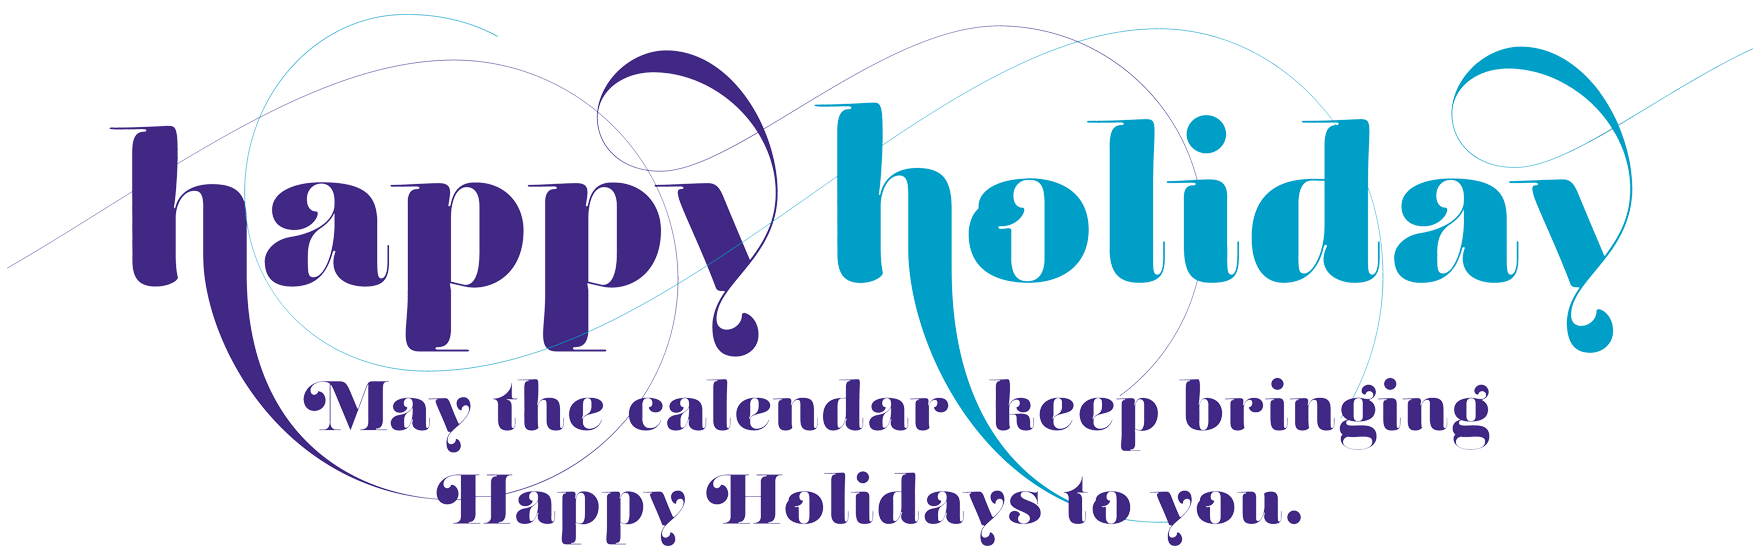 Happy Holiday - May the calendar keep bringing Happy Holidays to you.